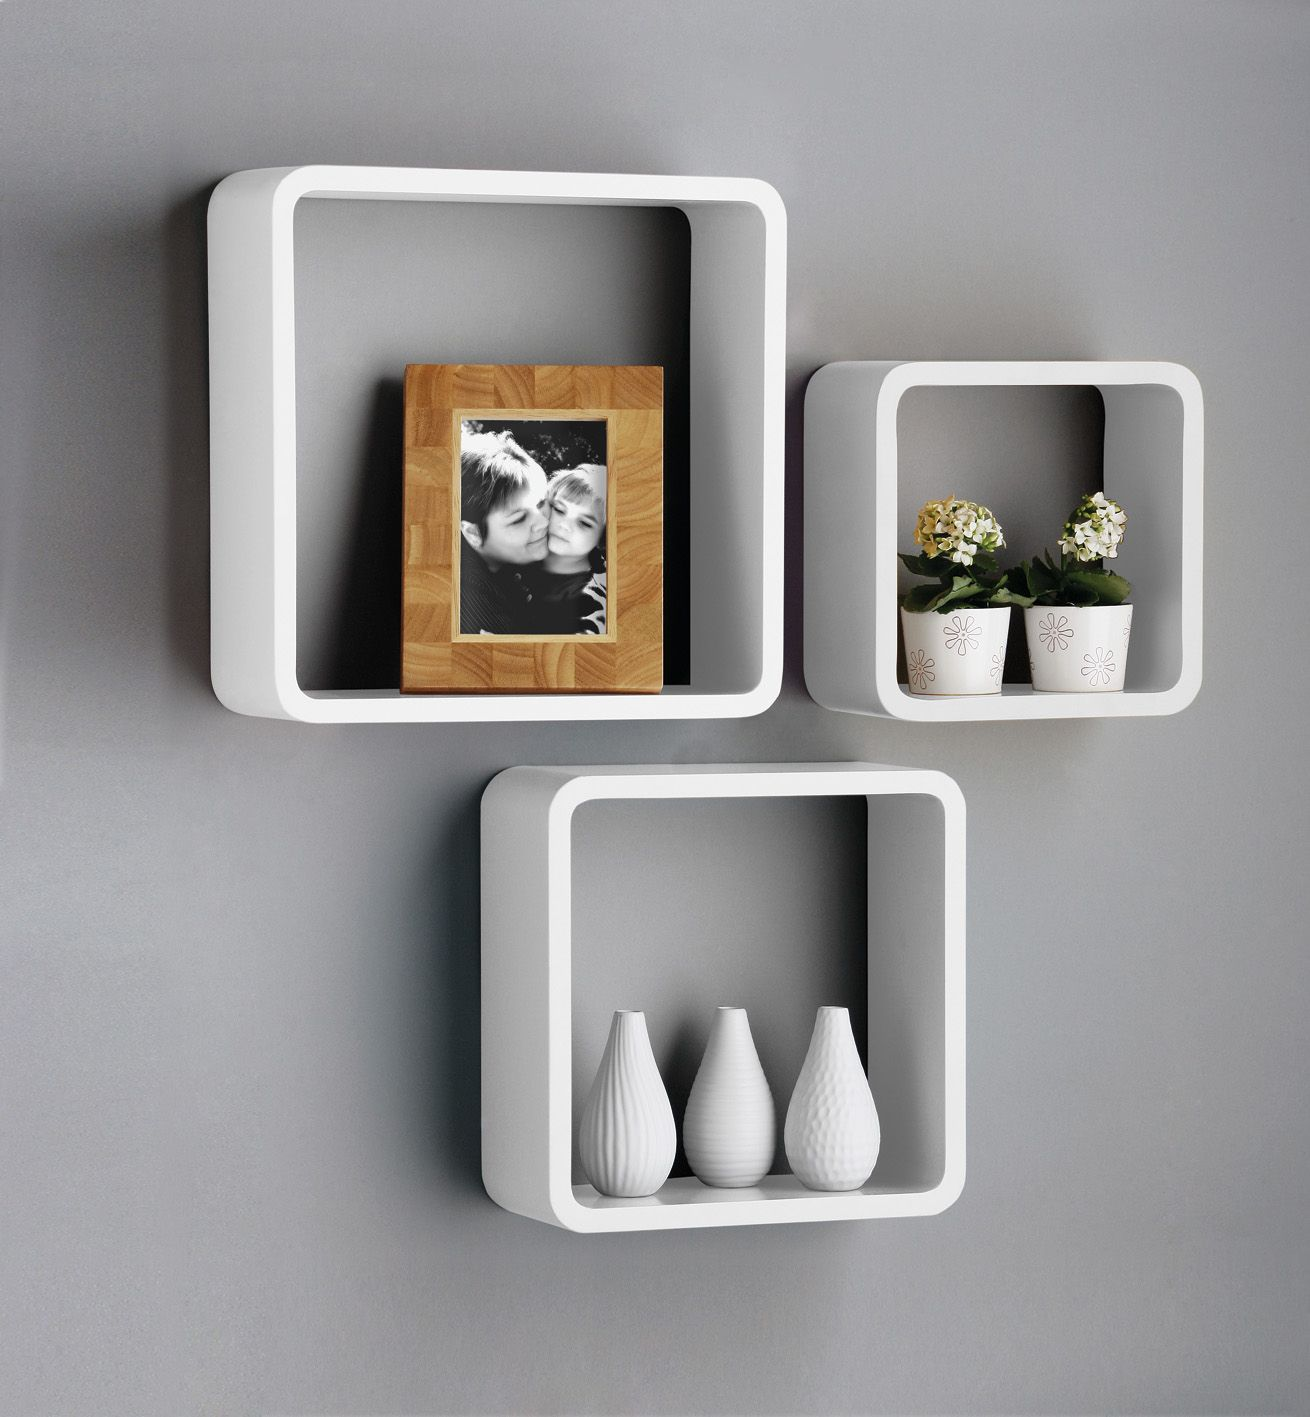 New Set Of 3 White U0026 Black Square Floating Cube Wall Storage Shelves Shelf  Cubes